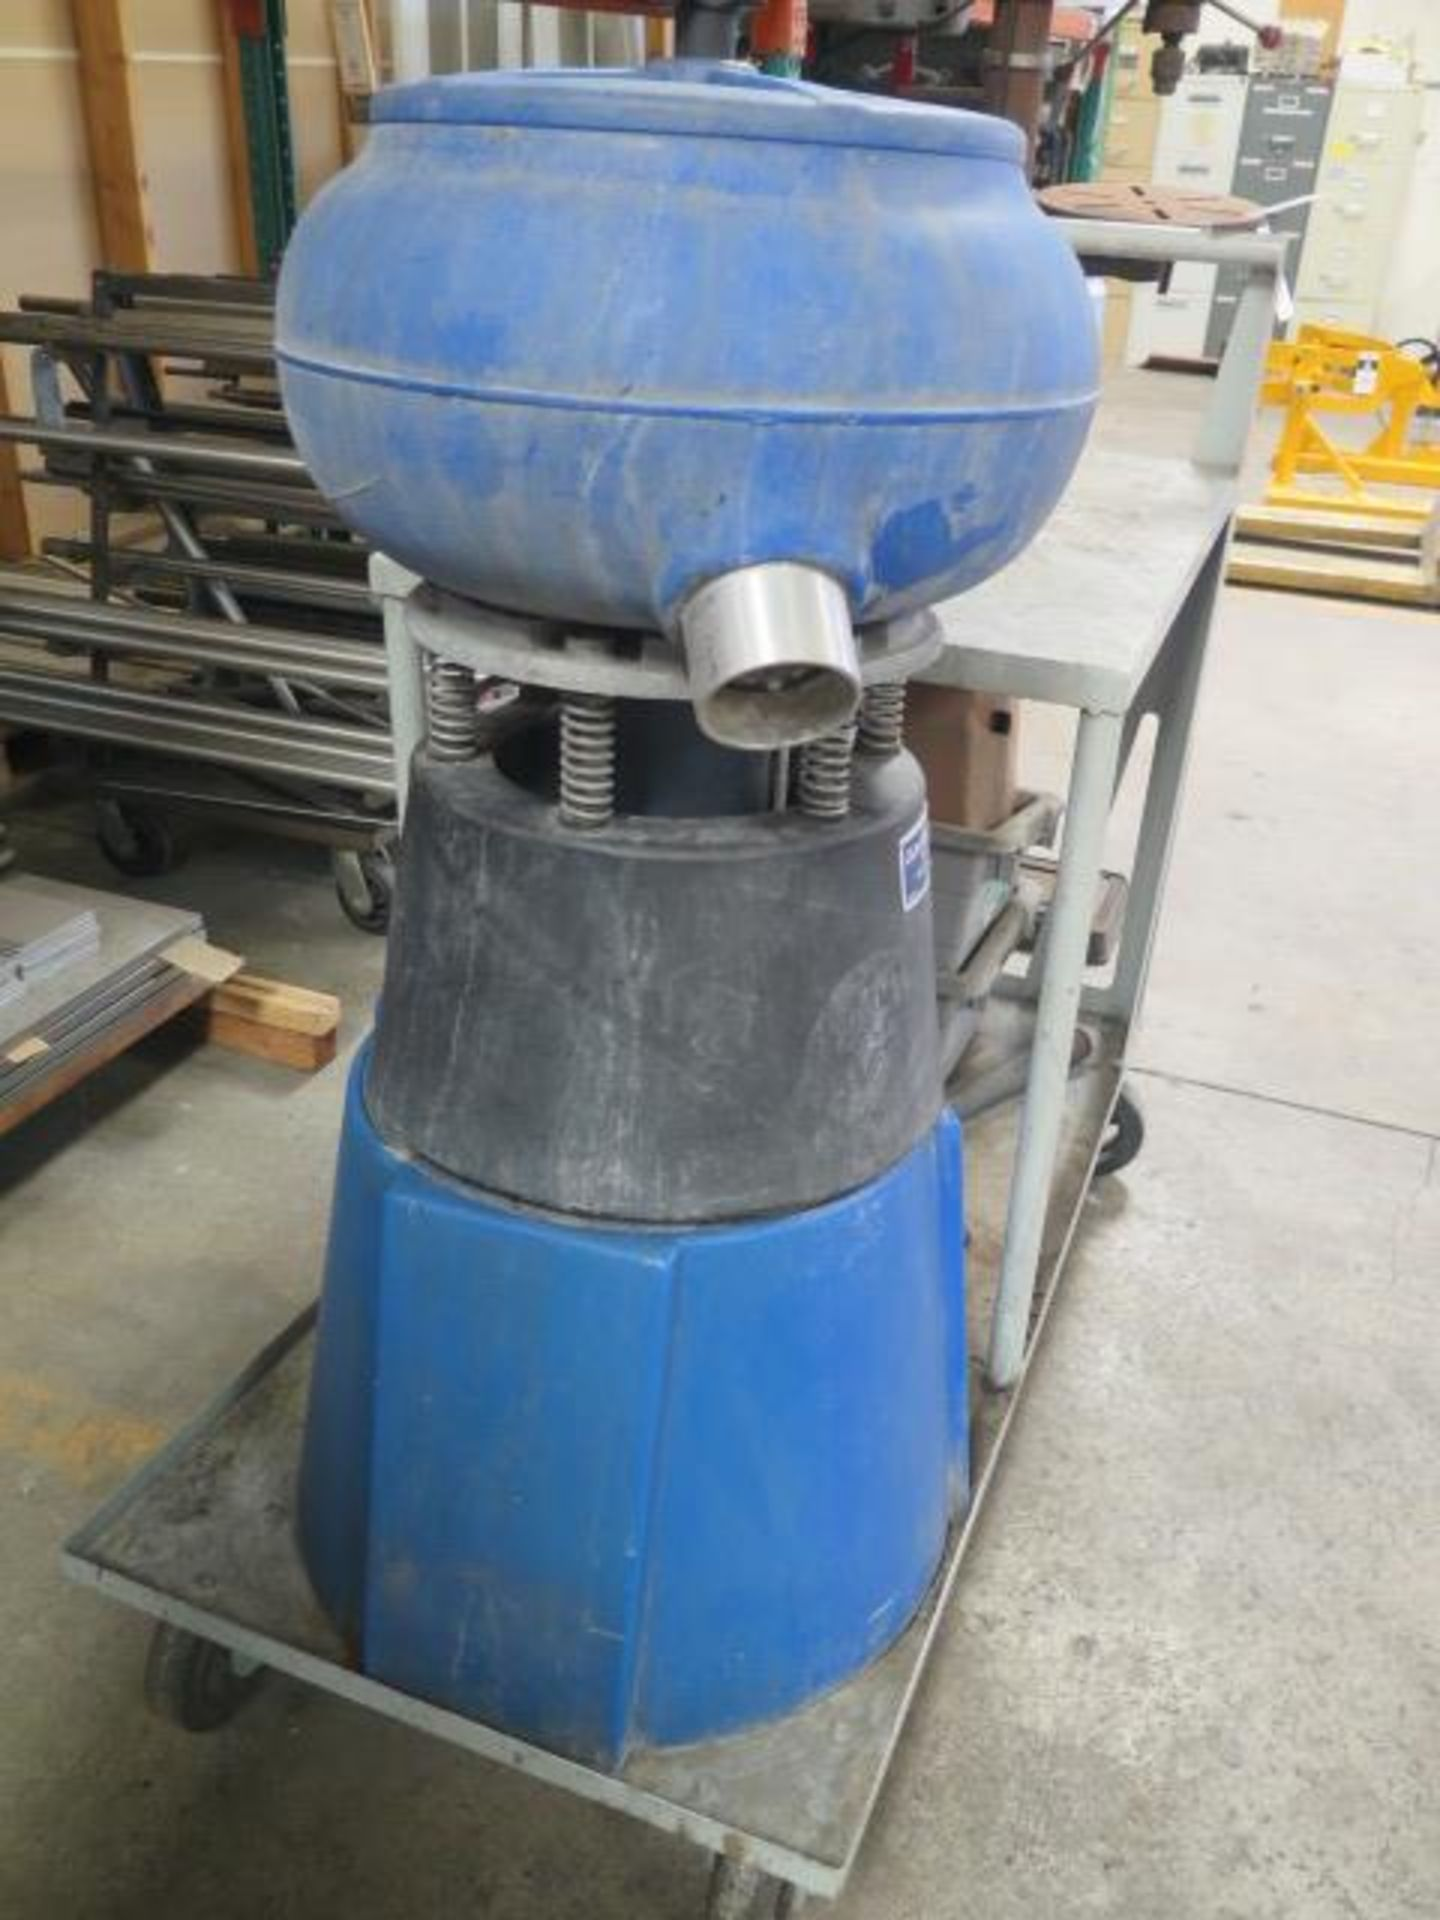 CM Topline Media Tumbler w/ Media and Cart (SOLD AS-IS - NO WARRANTY) - Image 3 of 4